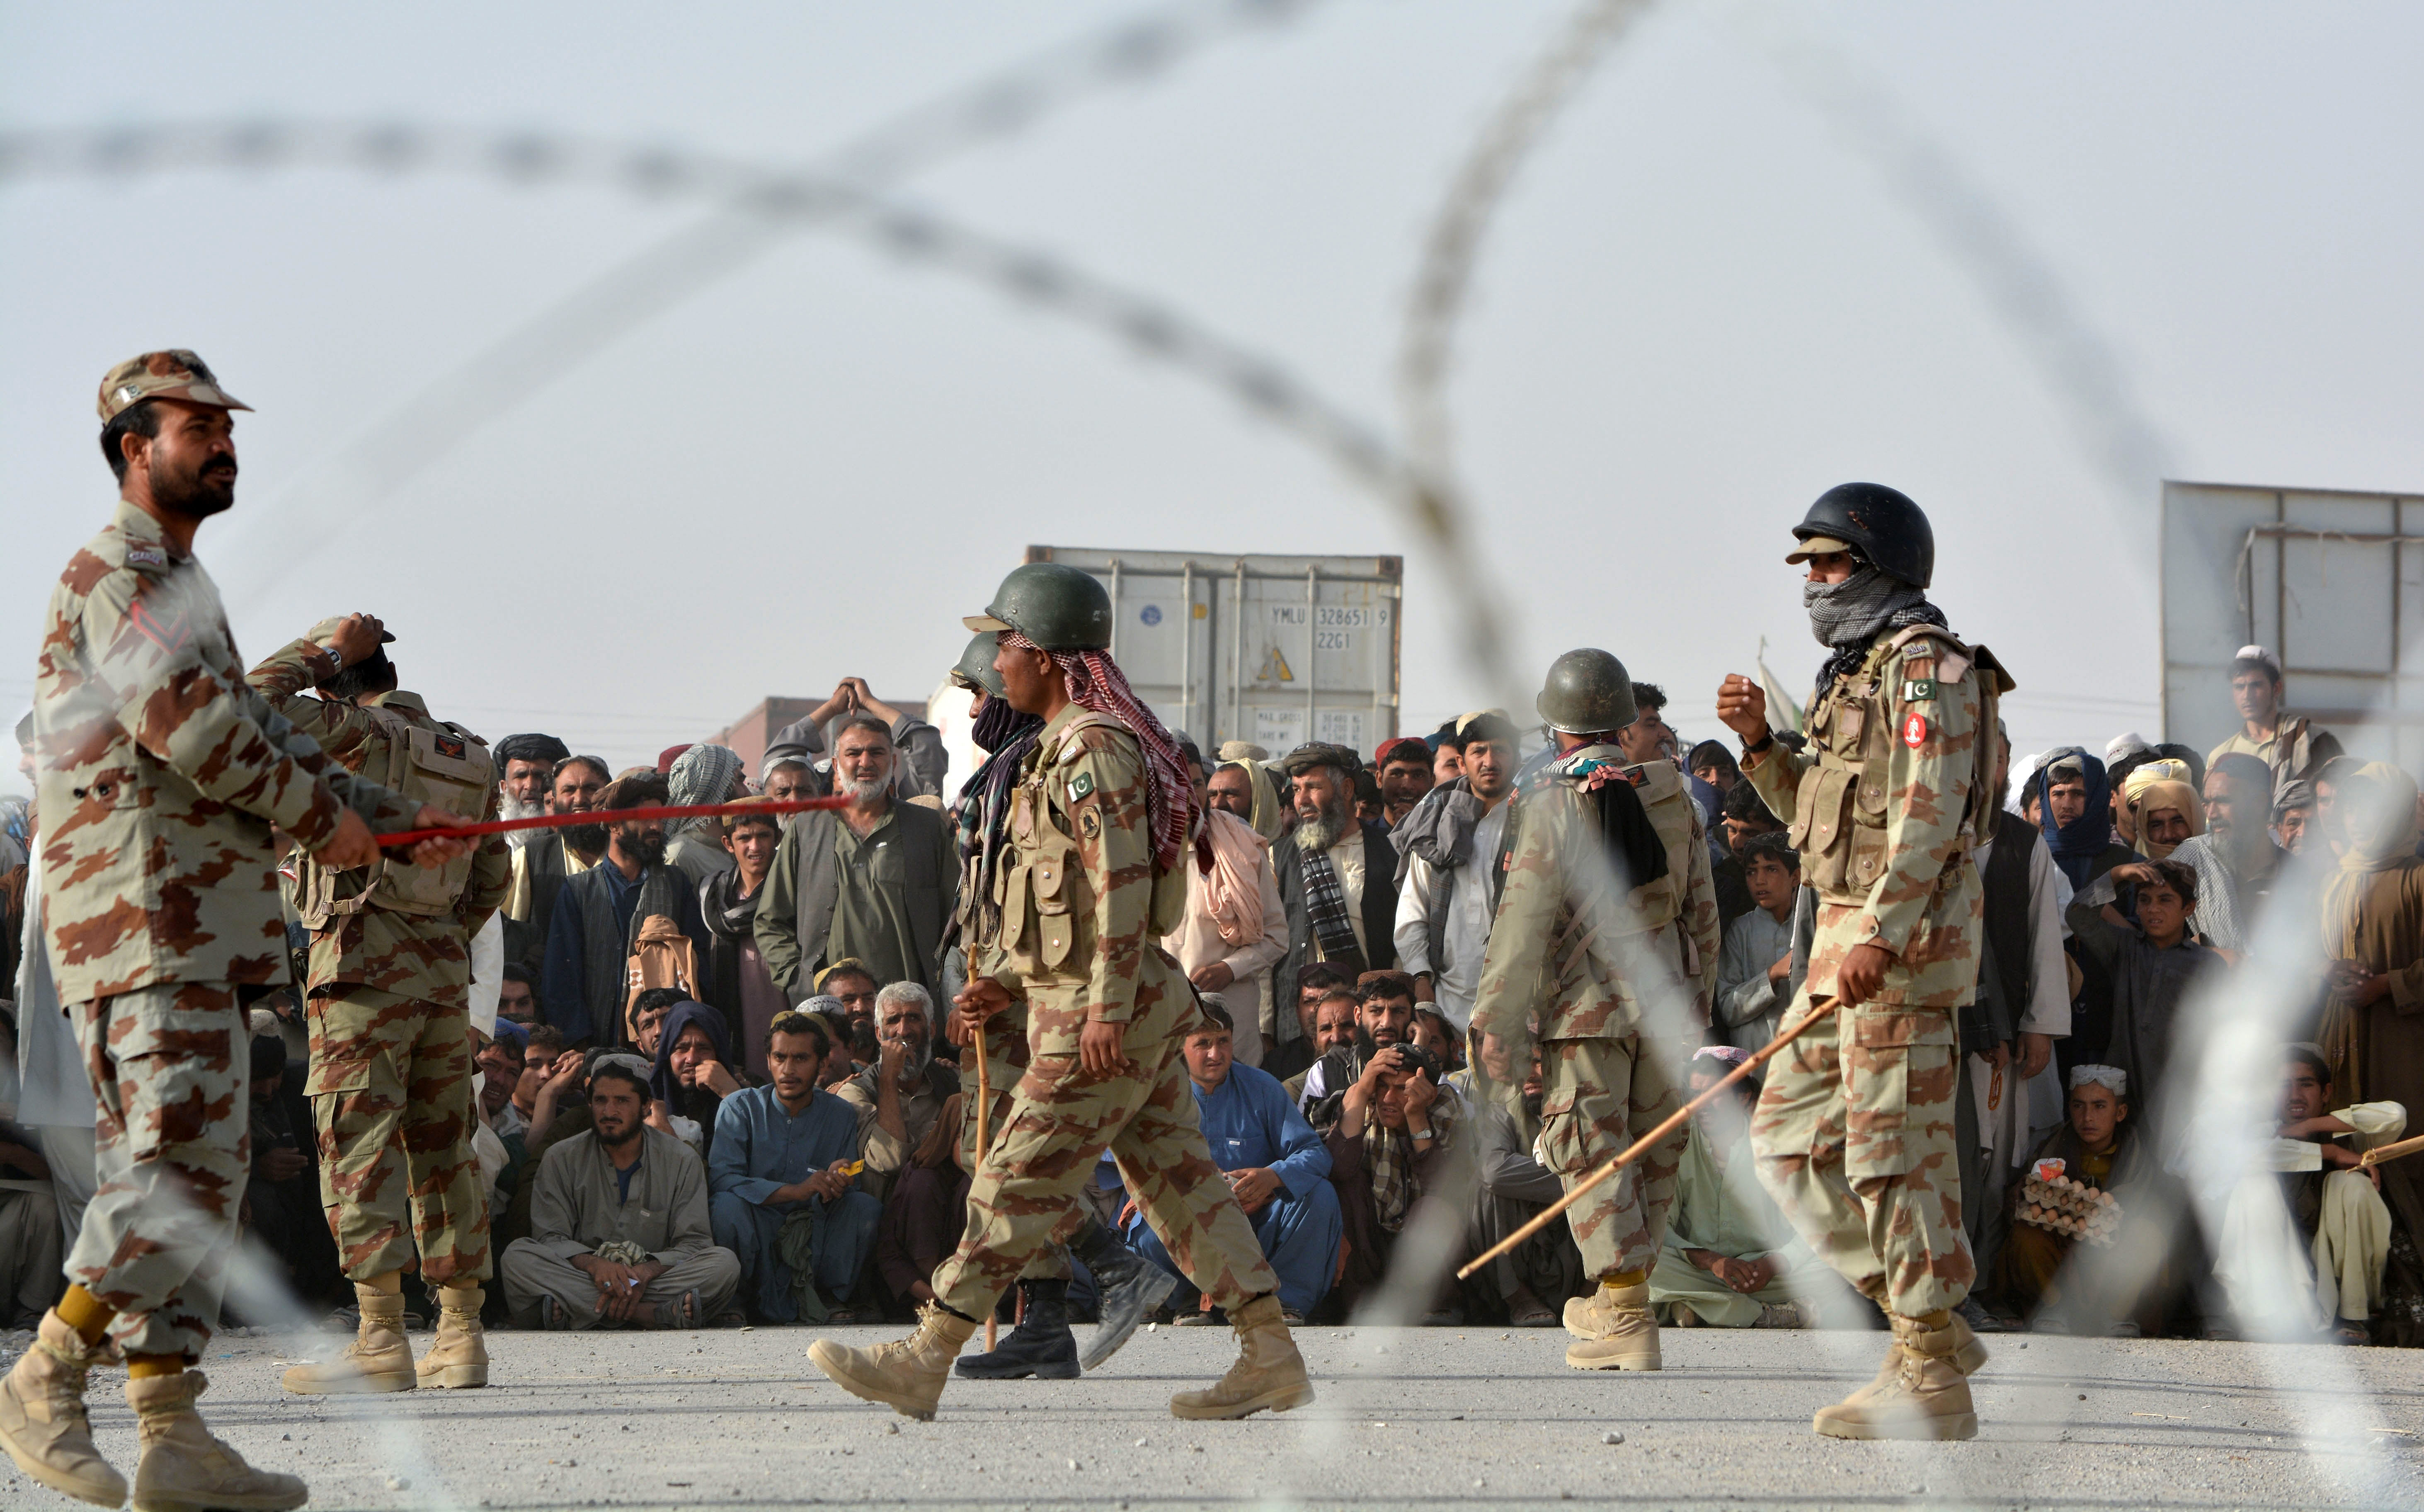 FILE - People wait to cross into Afghanistan at the Pakistani border post Chaman, Sept. 1, 2016. Afghanistan opposes a new Pakistani flag ceremony at the key border crossing between the countries.